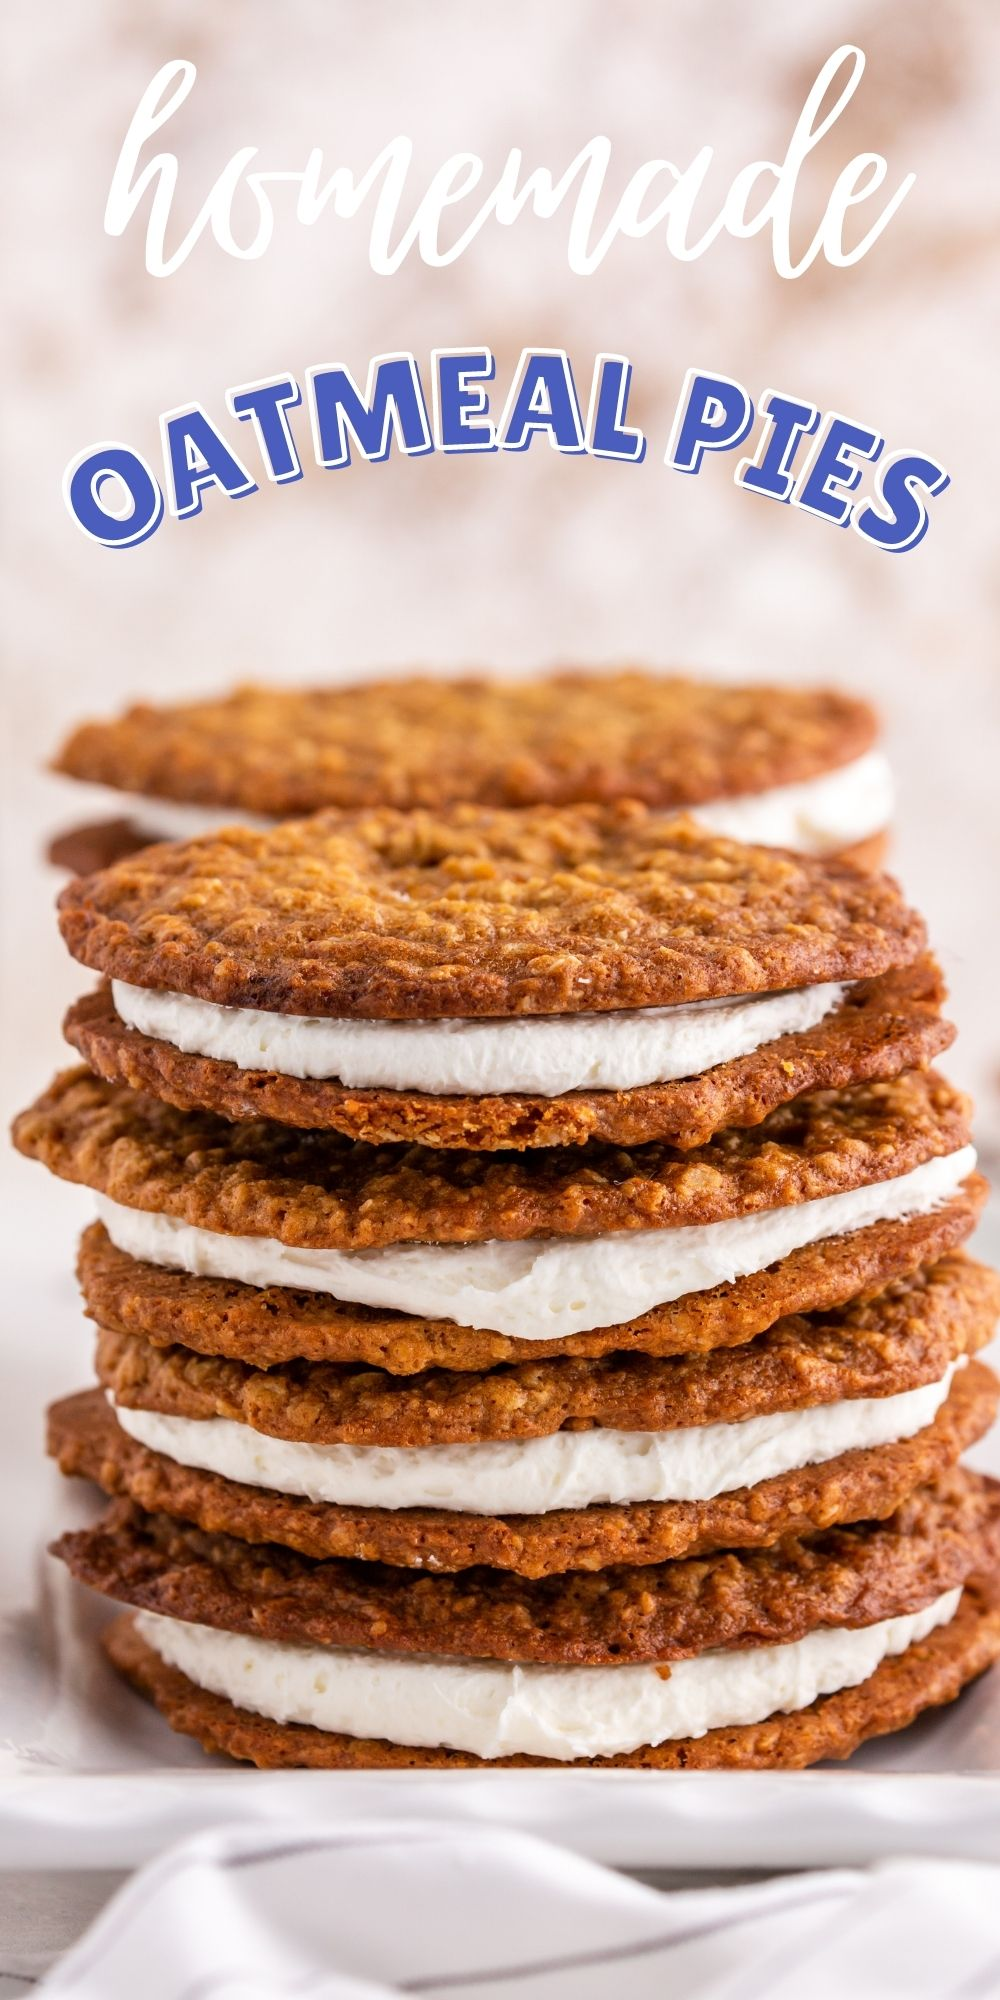 These homemade oatmeal pies are even better than any childhood memories you may have of the Little Debbie oatmeal creme pies. via @familyfresh